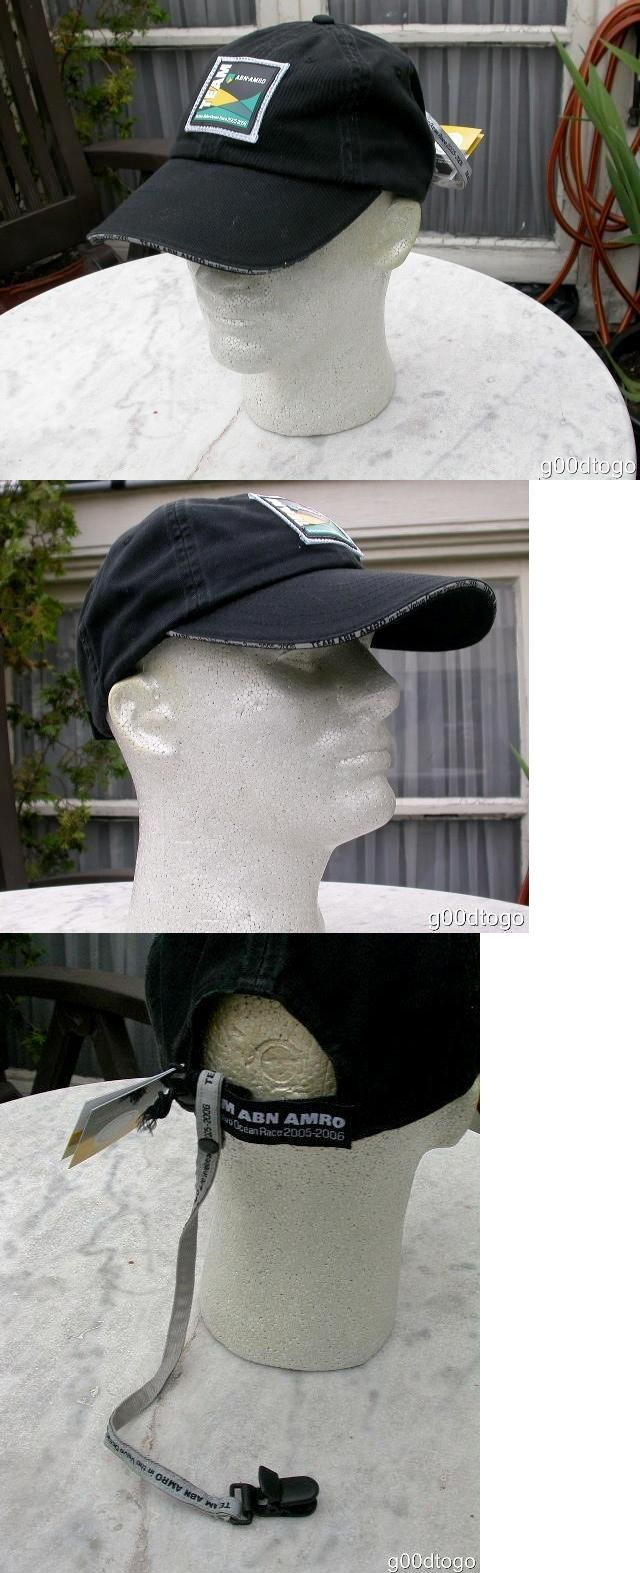 Racing-Other 2875: Volvo Ocean Race Abn Amro Official Baseball Cap Hat: New -- Life At The Extreme! -> BUY IT NOW ONLY: $31.5 on eBay!